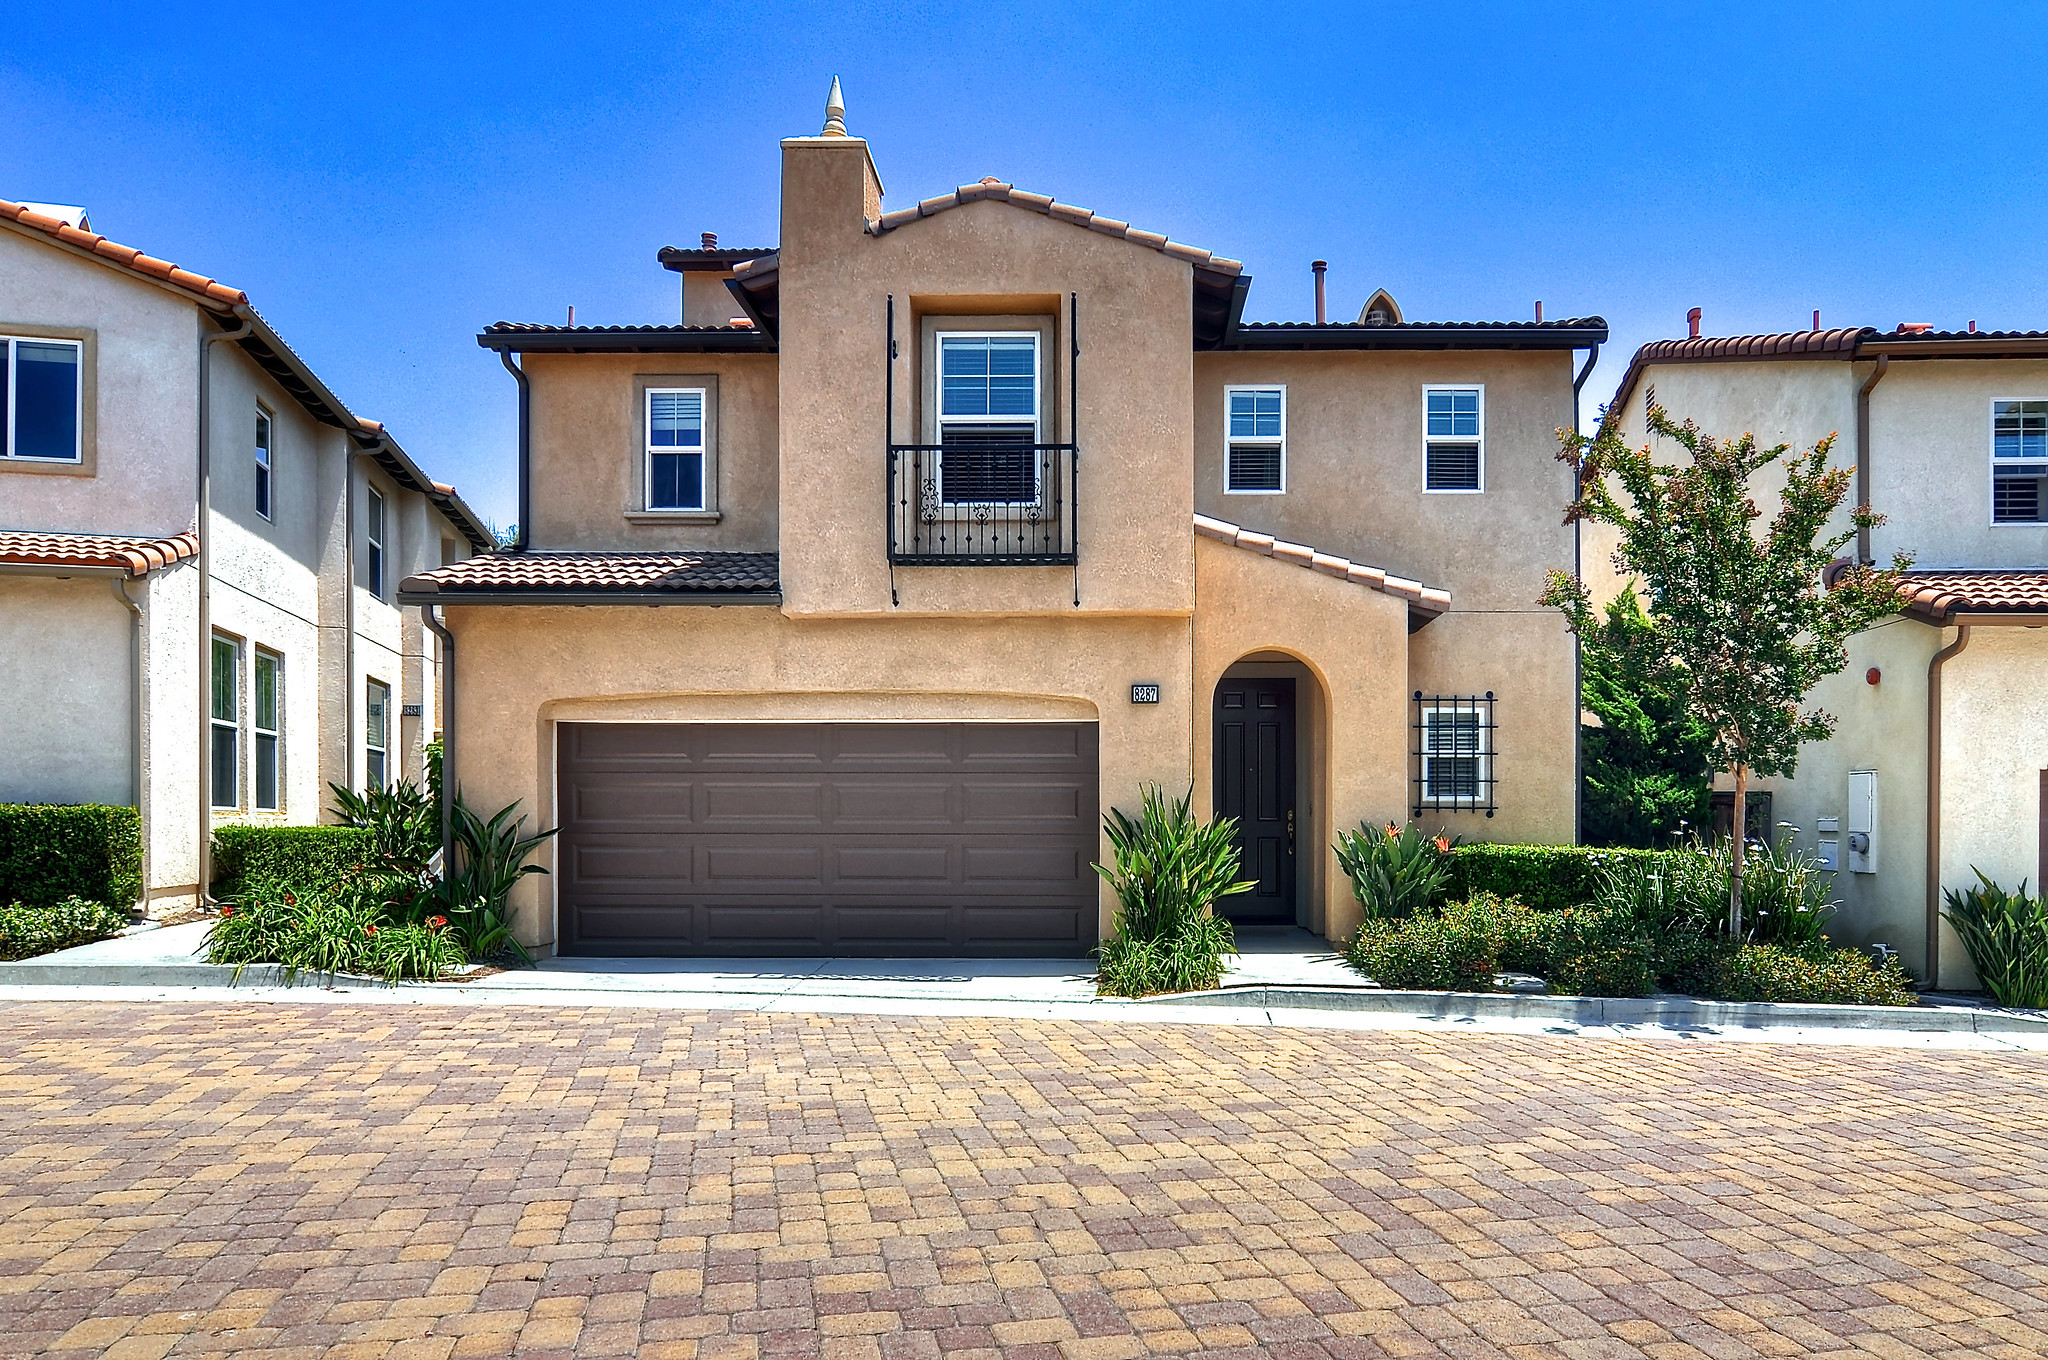 8287 E Loftwood Lane | Open House Sat 5/25 from 1-4 pm